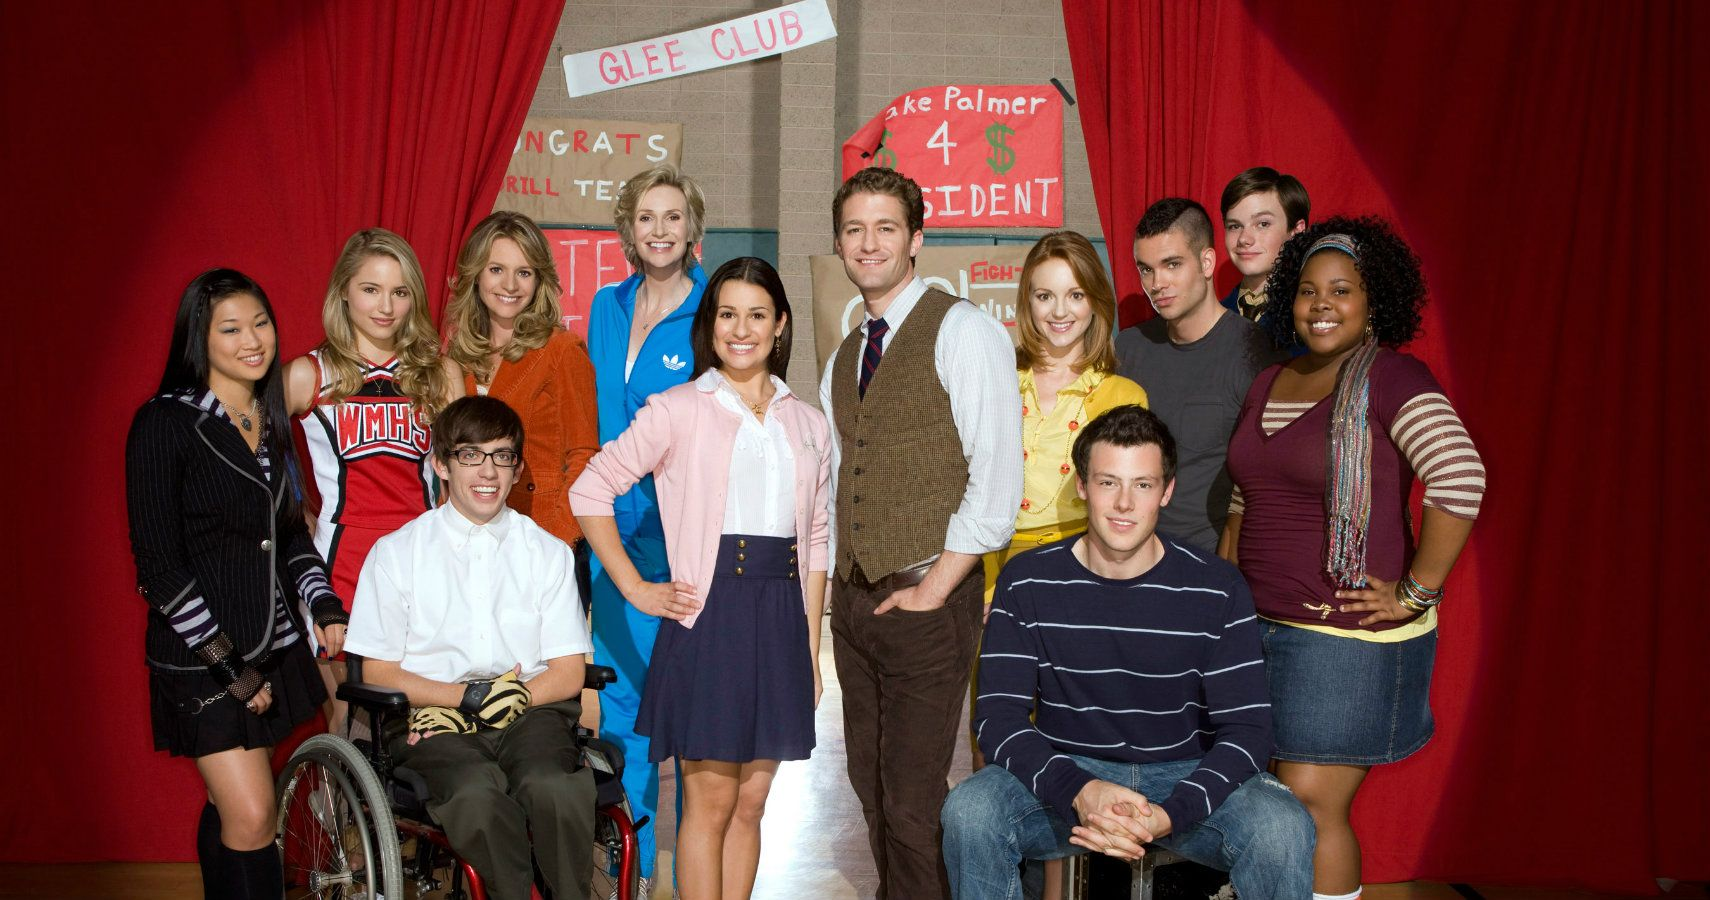 Glee: 10 Best Episodes According To IMDb | ScreenRant